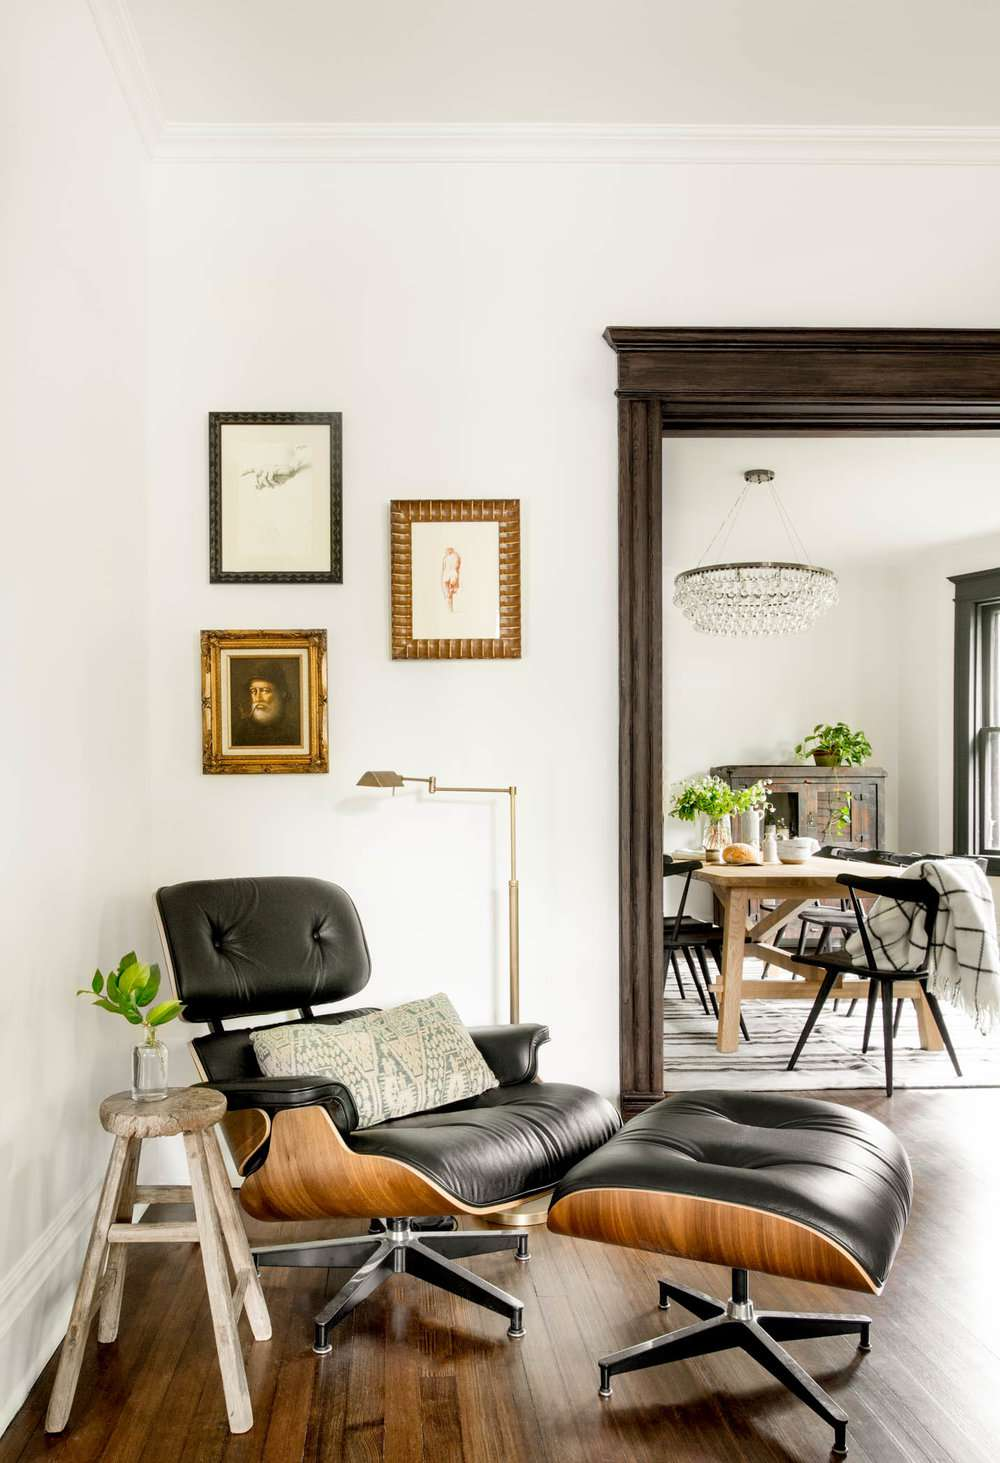 Eames chair in a living room corner with assorted art hanging above